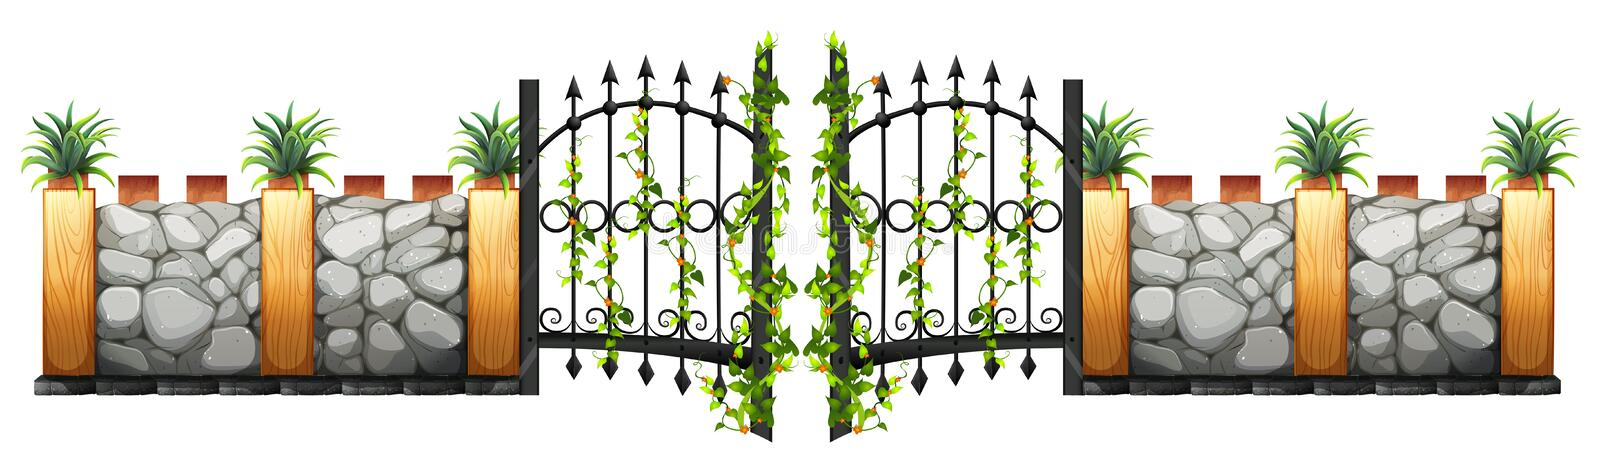 Wall and gate design royalty free illustration